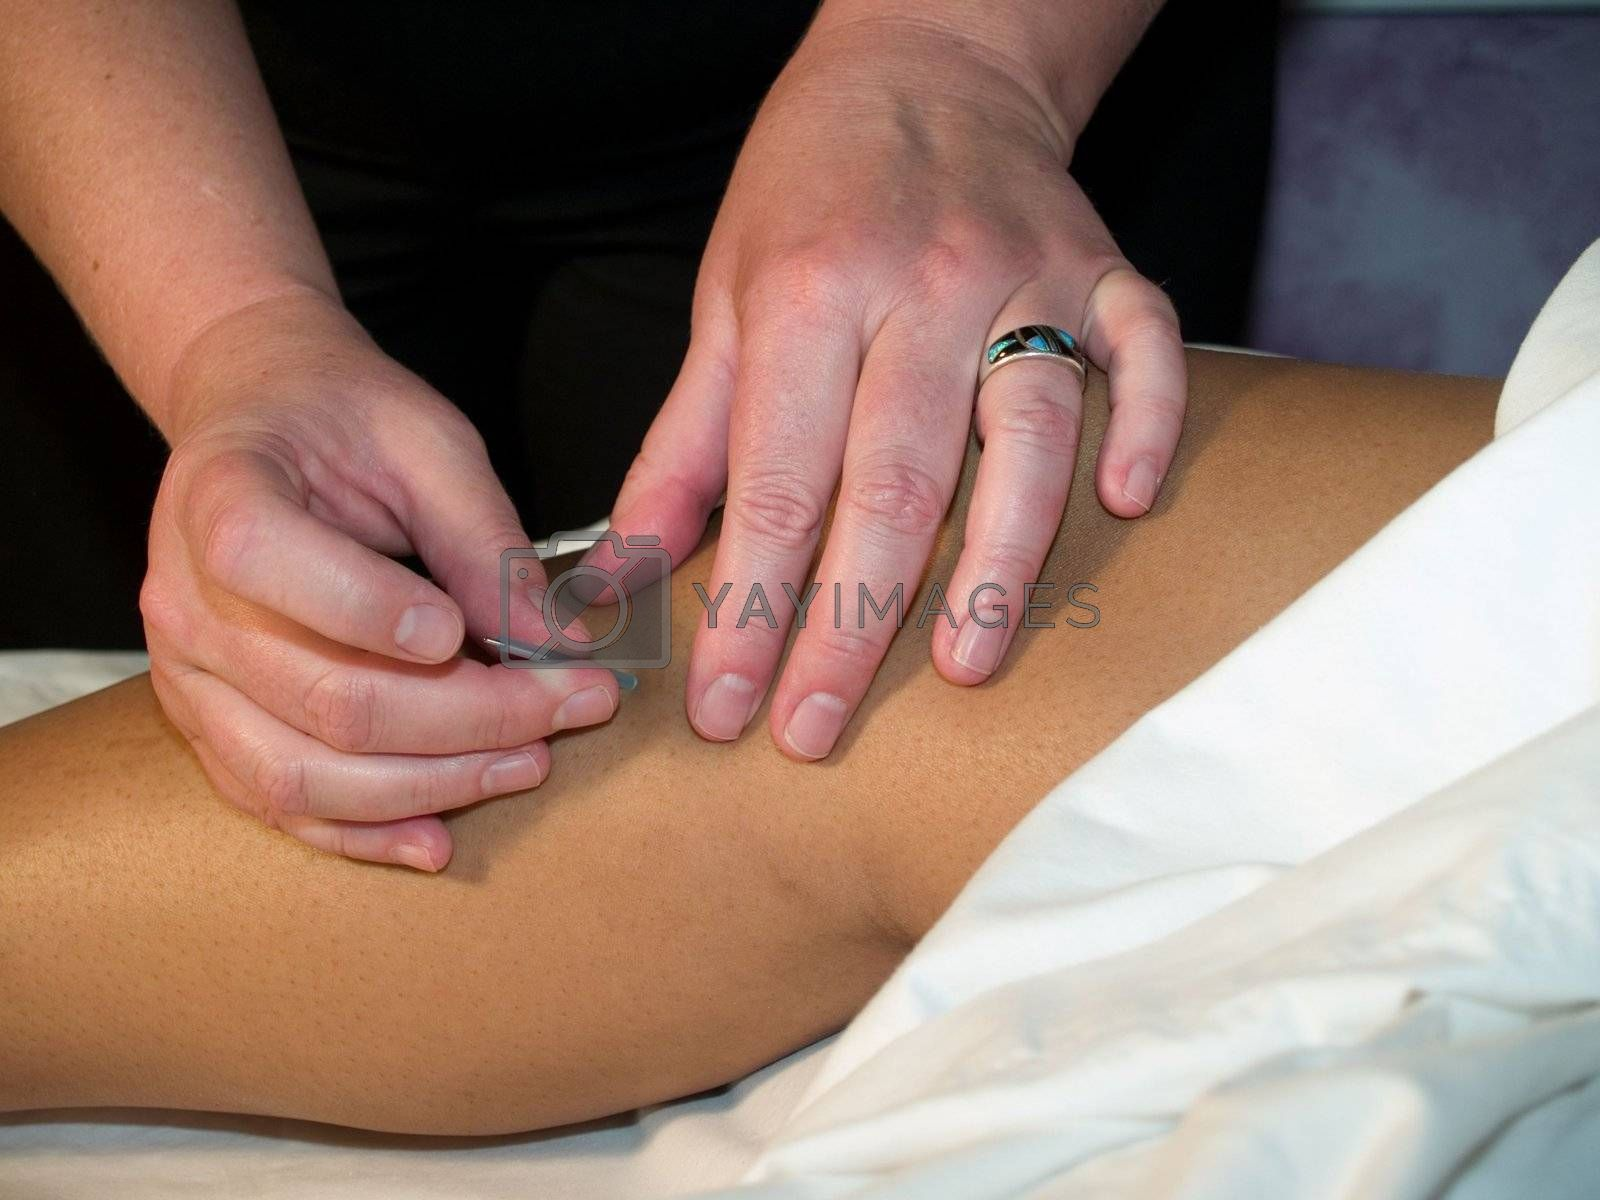 Acupuncture needle being administered to the leg.